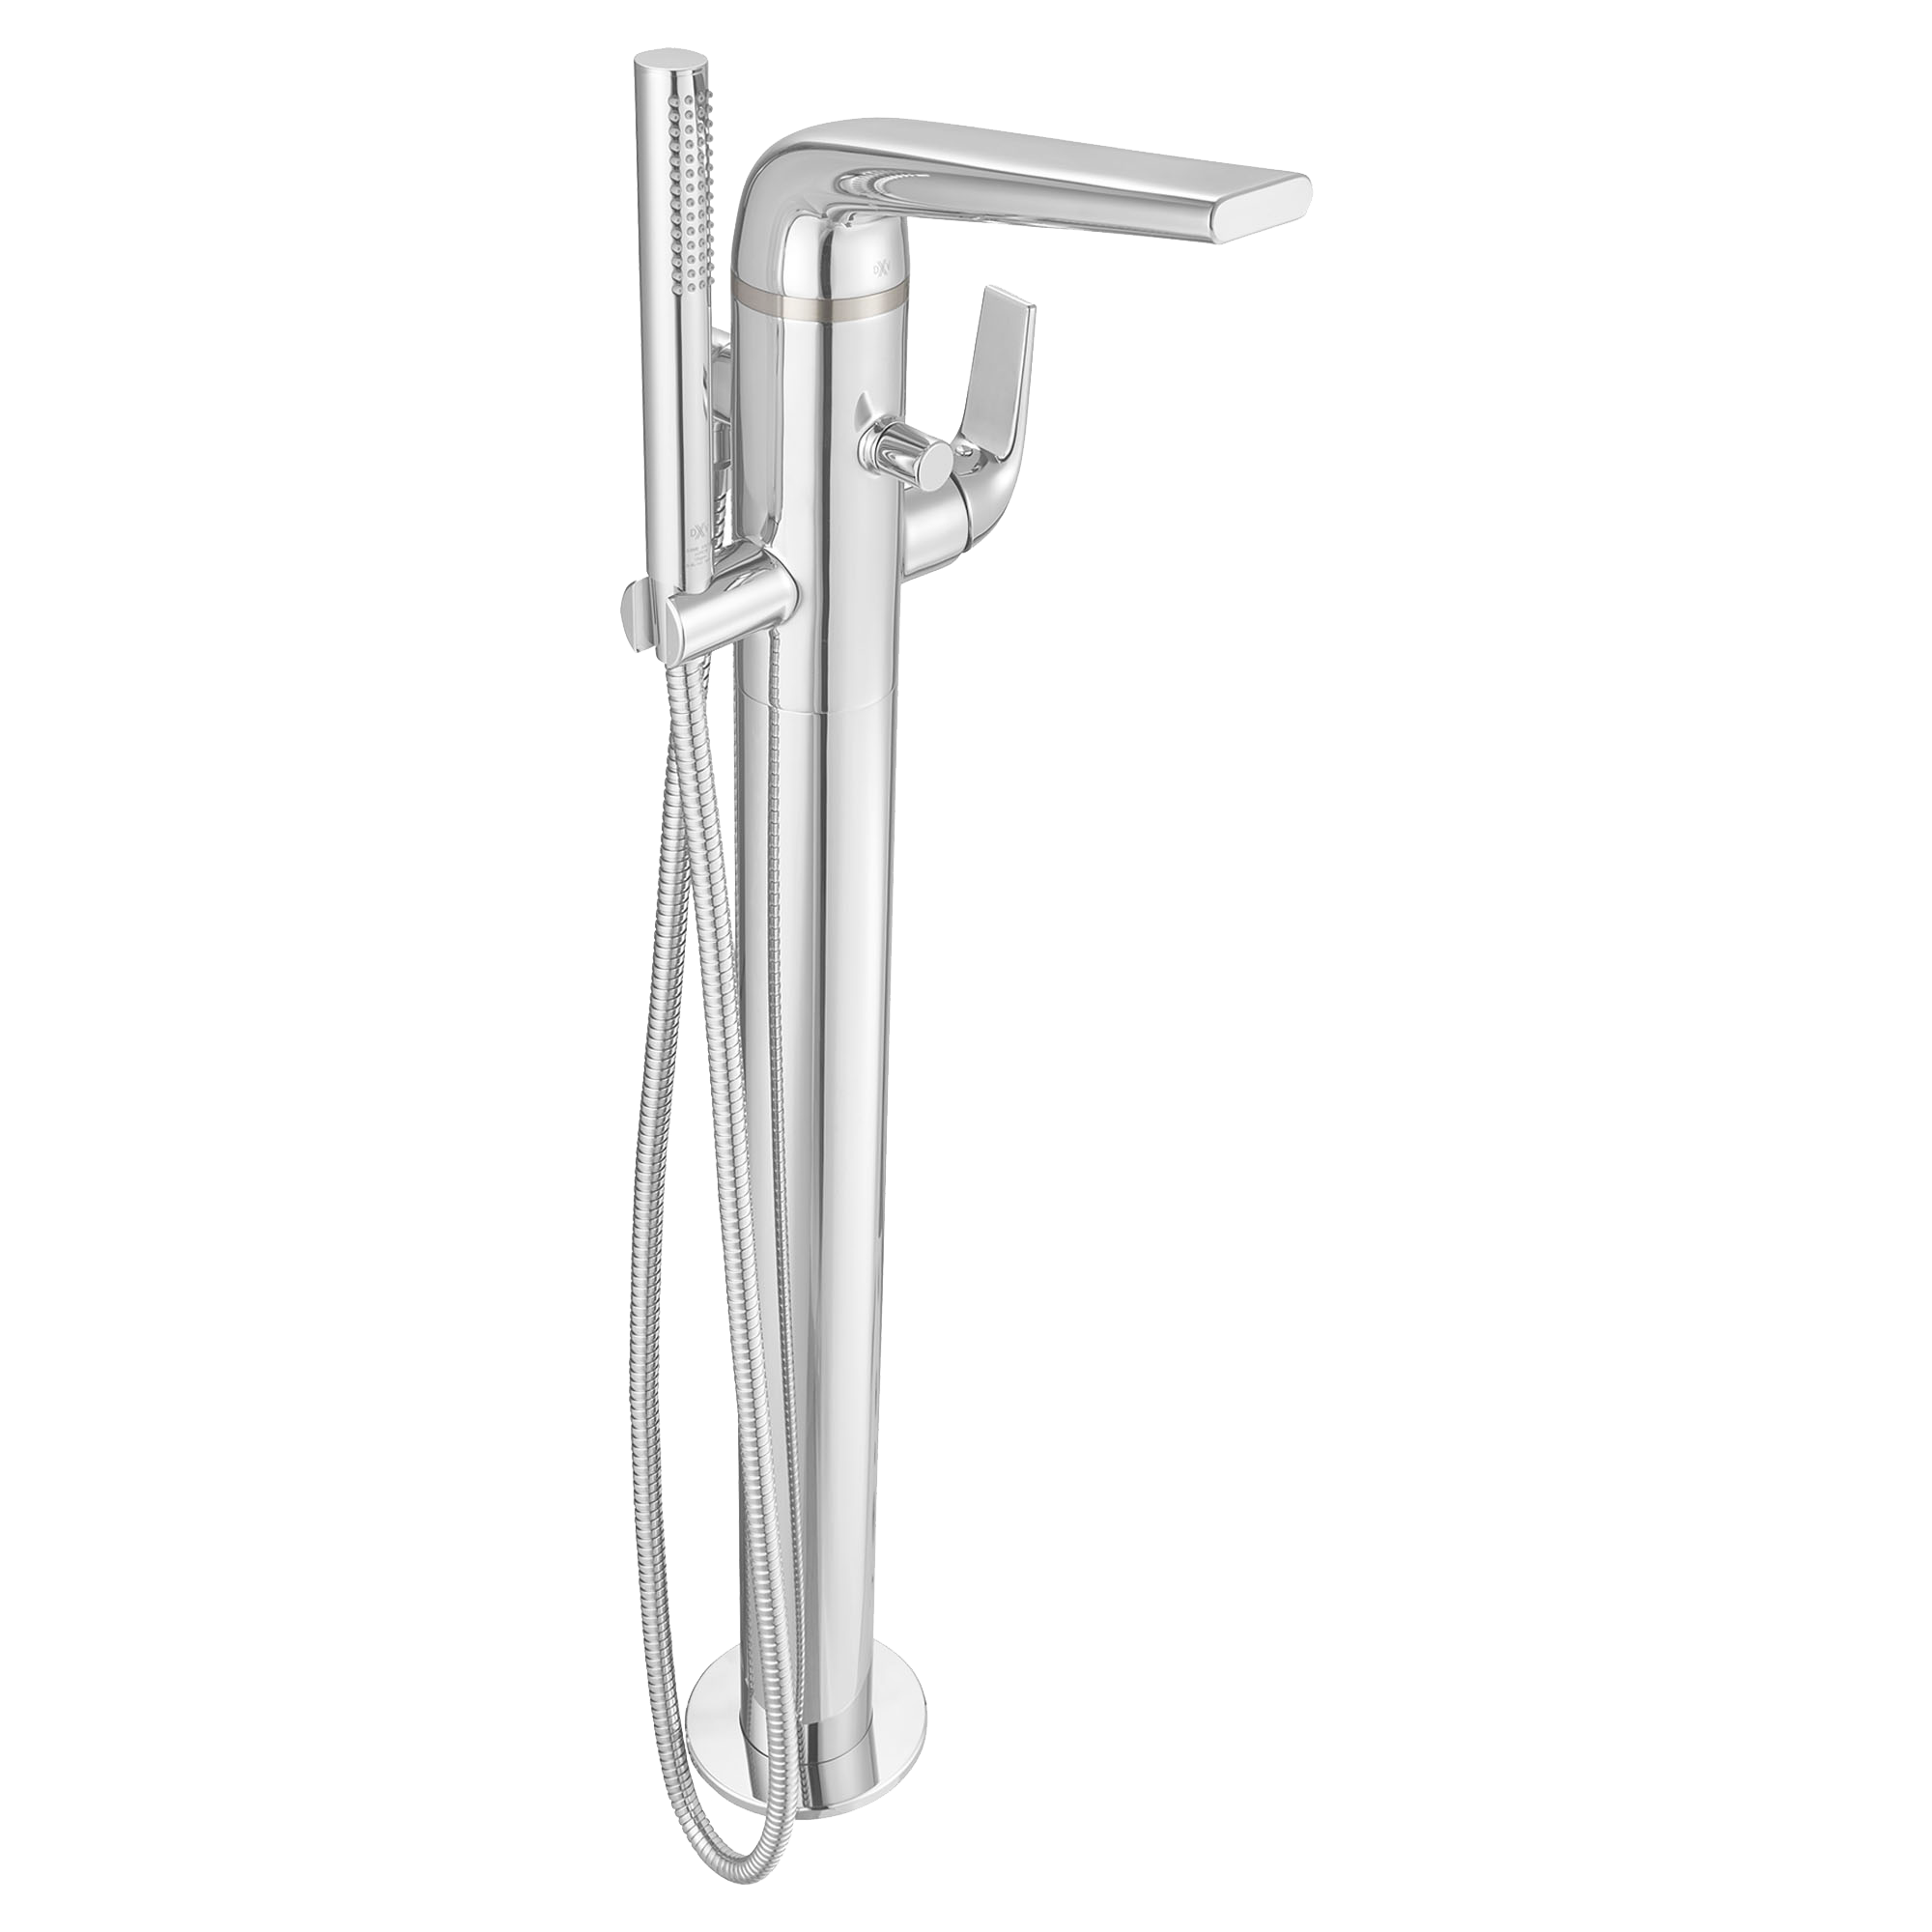 DXV Modulus Floor Mount Tub Filler